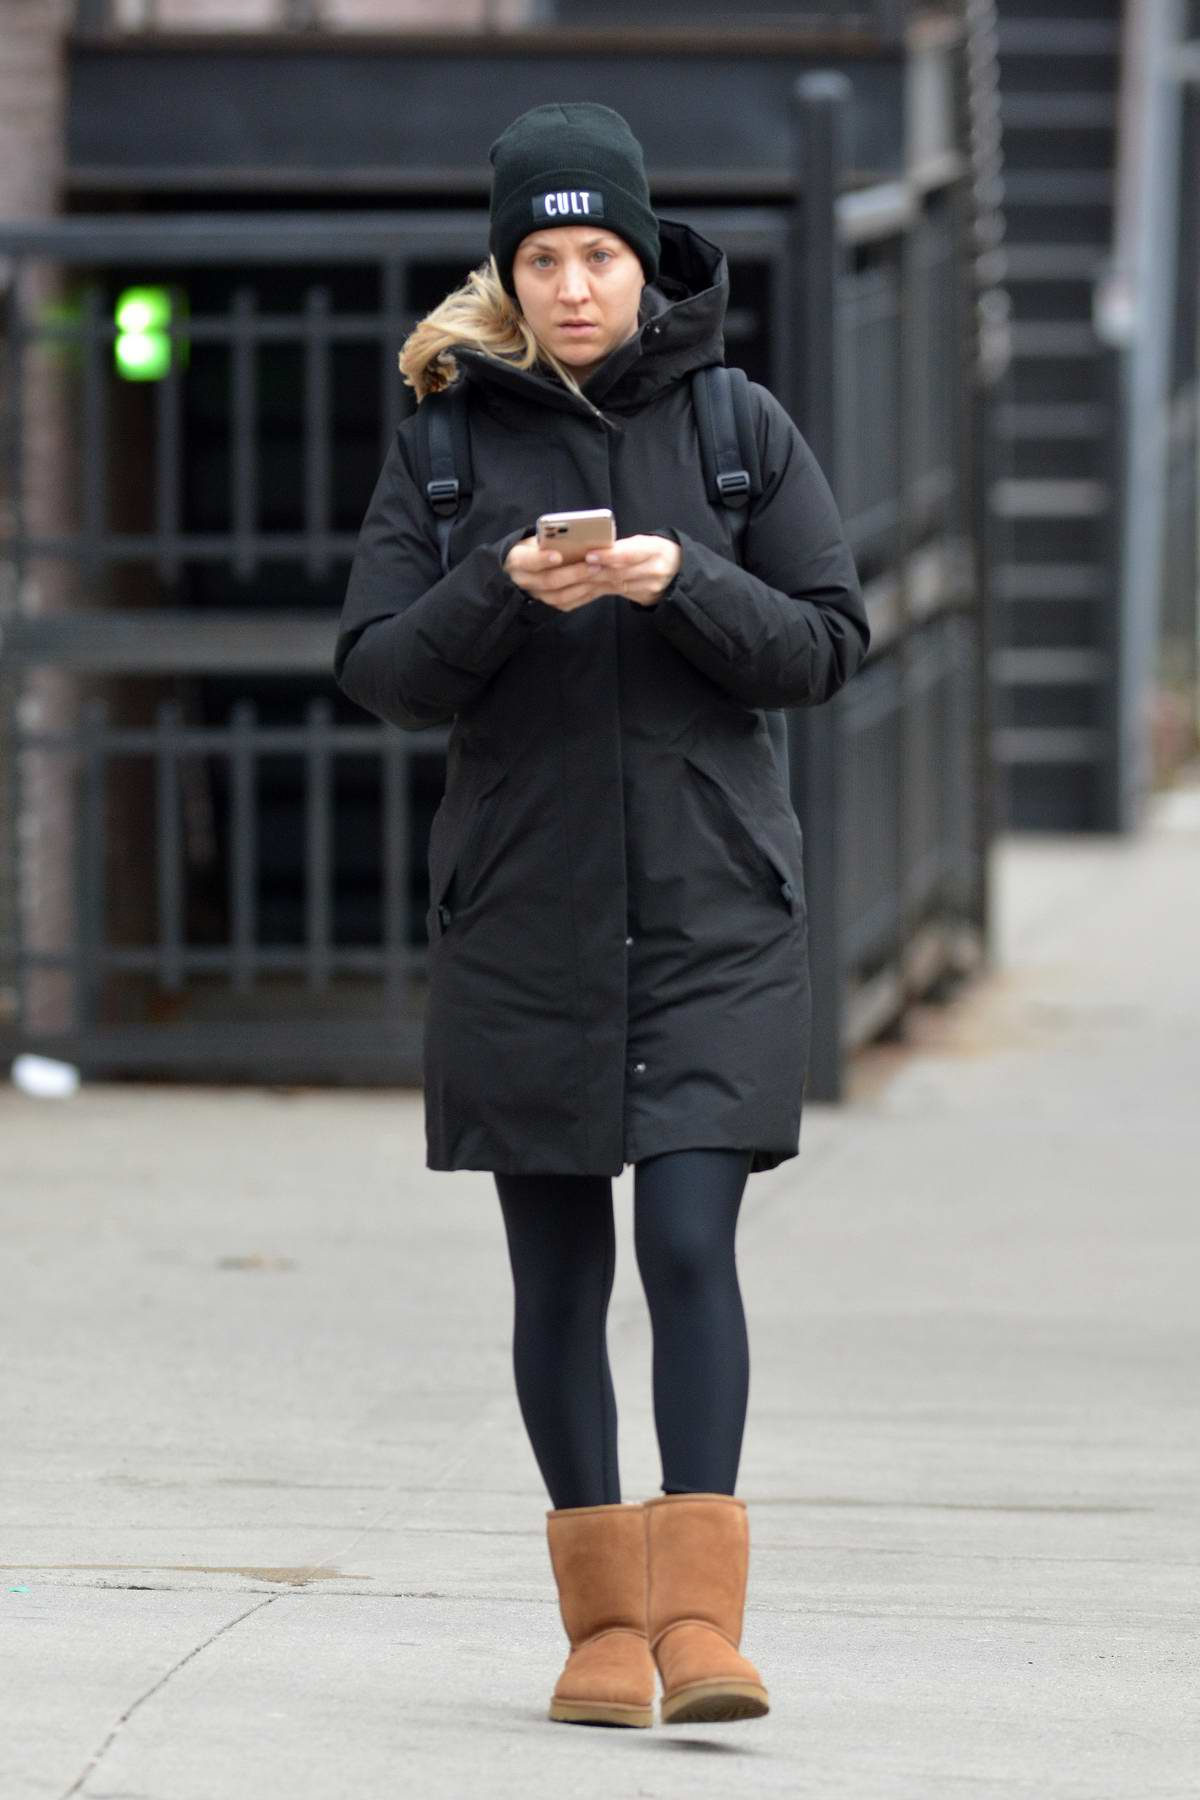 Kaley Cuoco bundles up in a black puffer jacket, leggings and UGG boots while out on a stroll in New York City